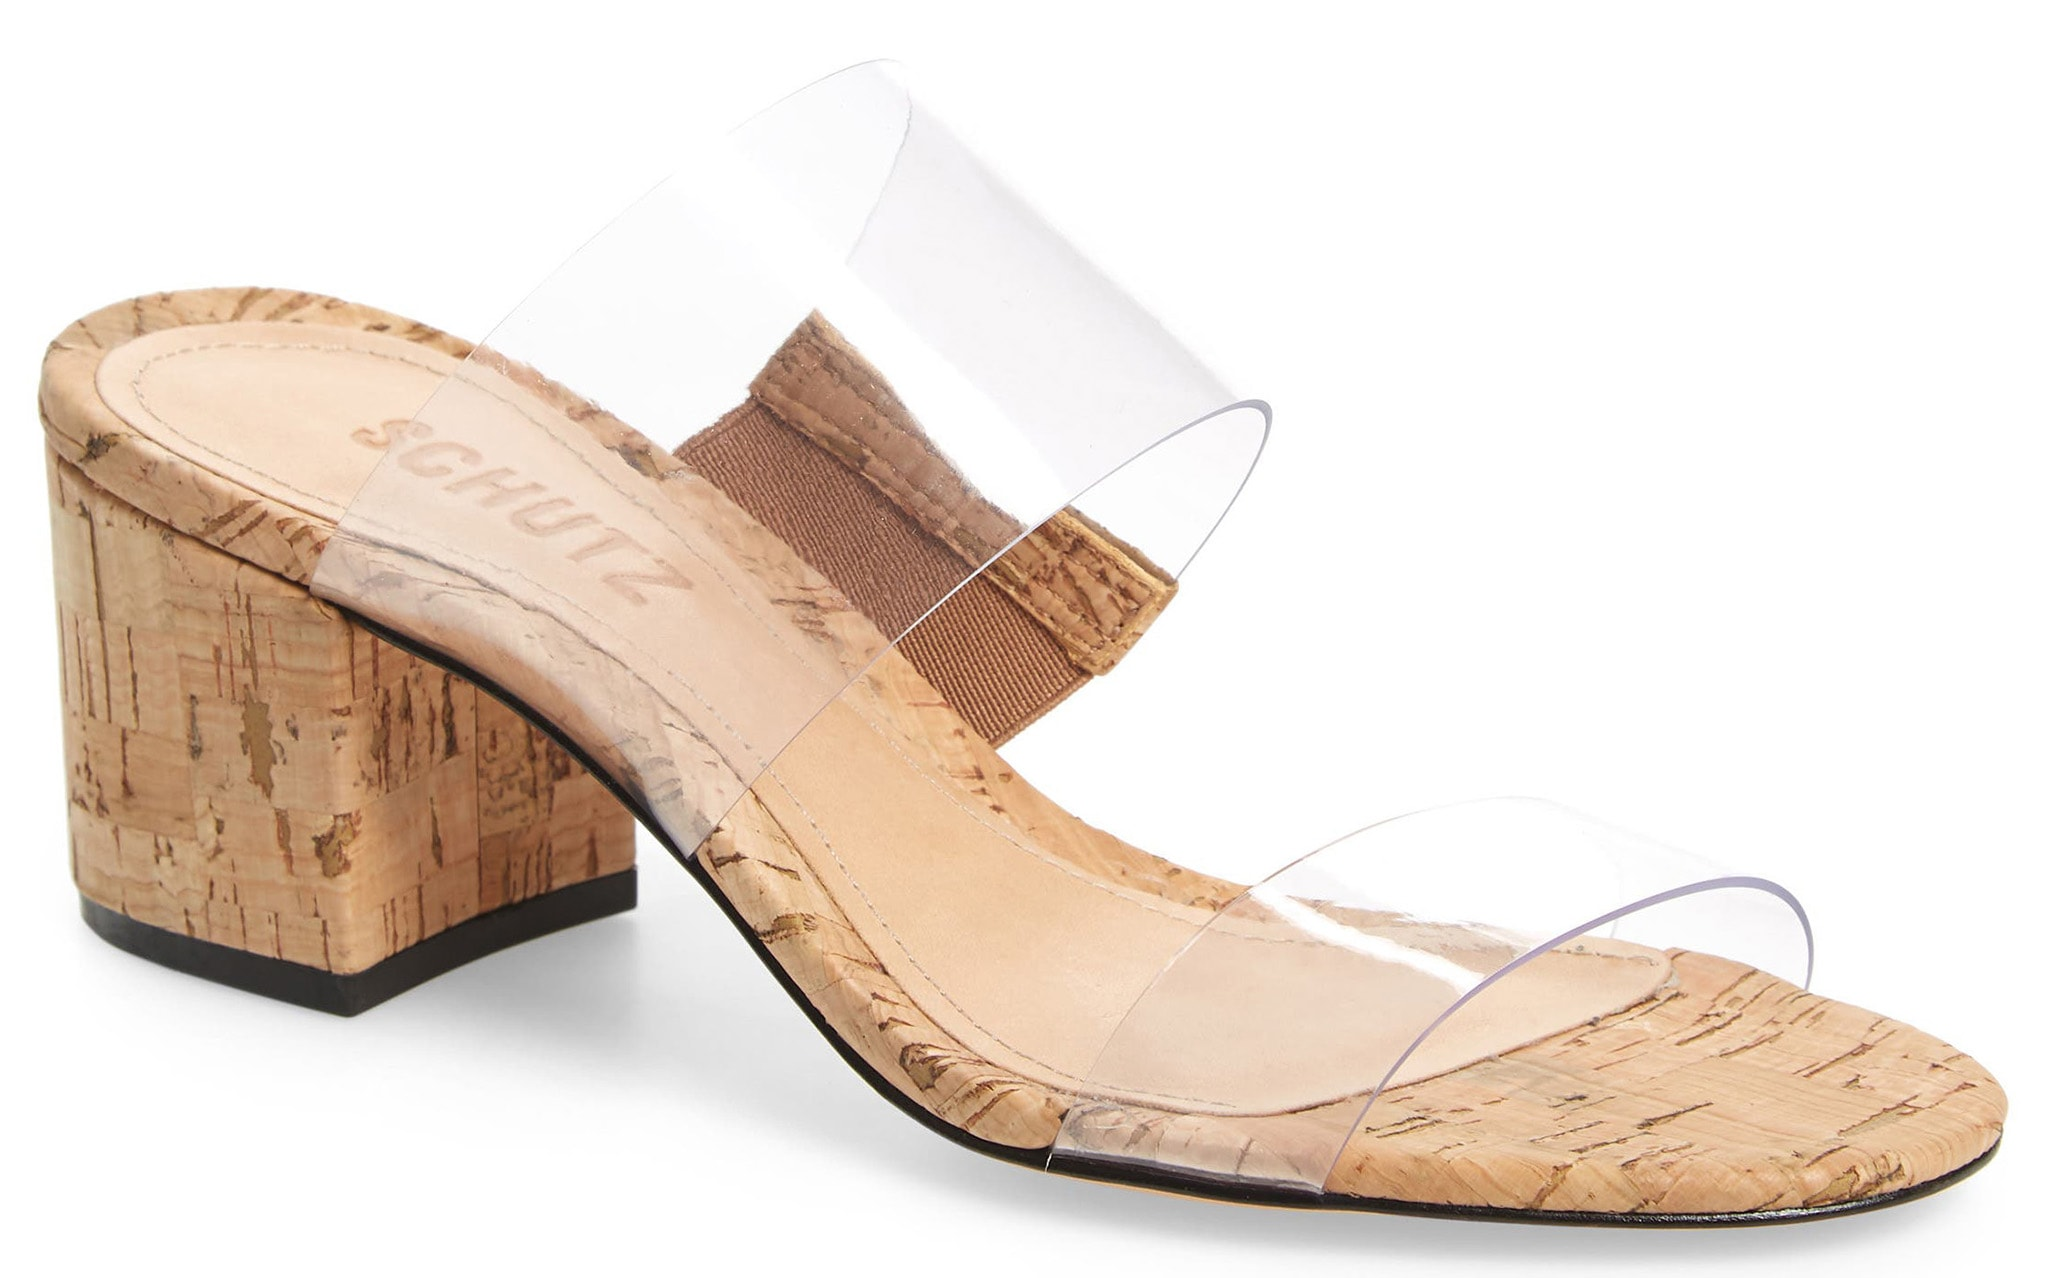 Schutz's Victorie slide sandal features minimalist clear straps with classic block heels in cork material